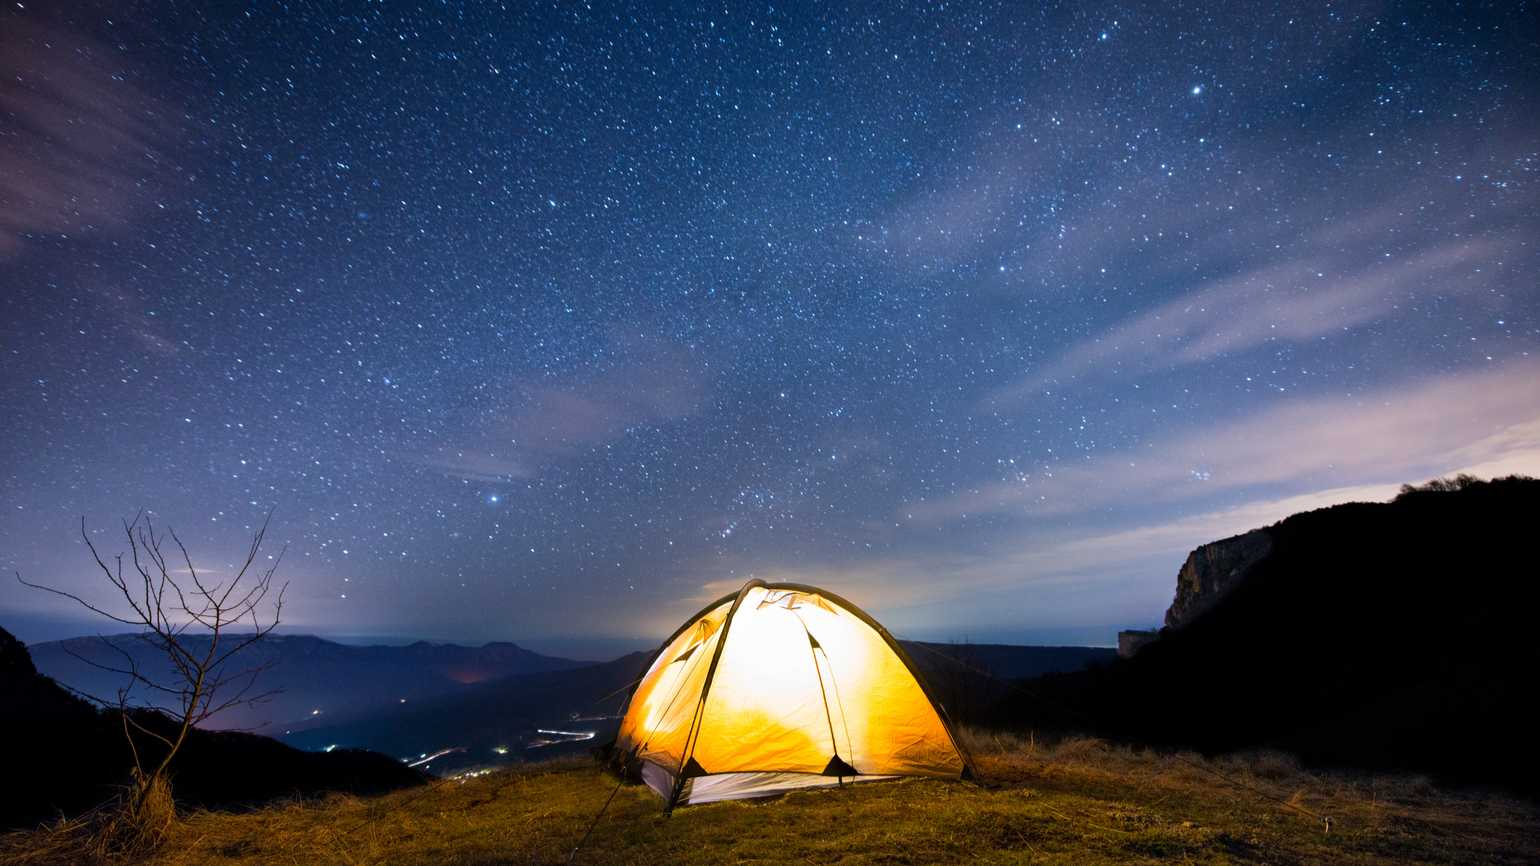 Camping with God